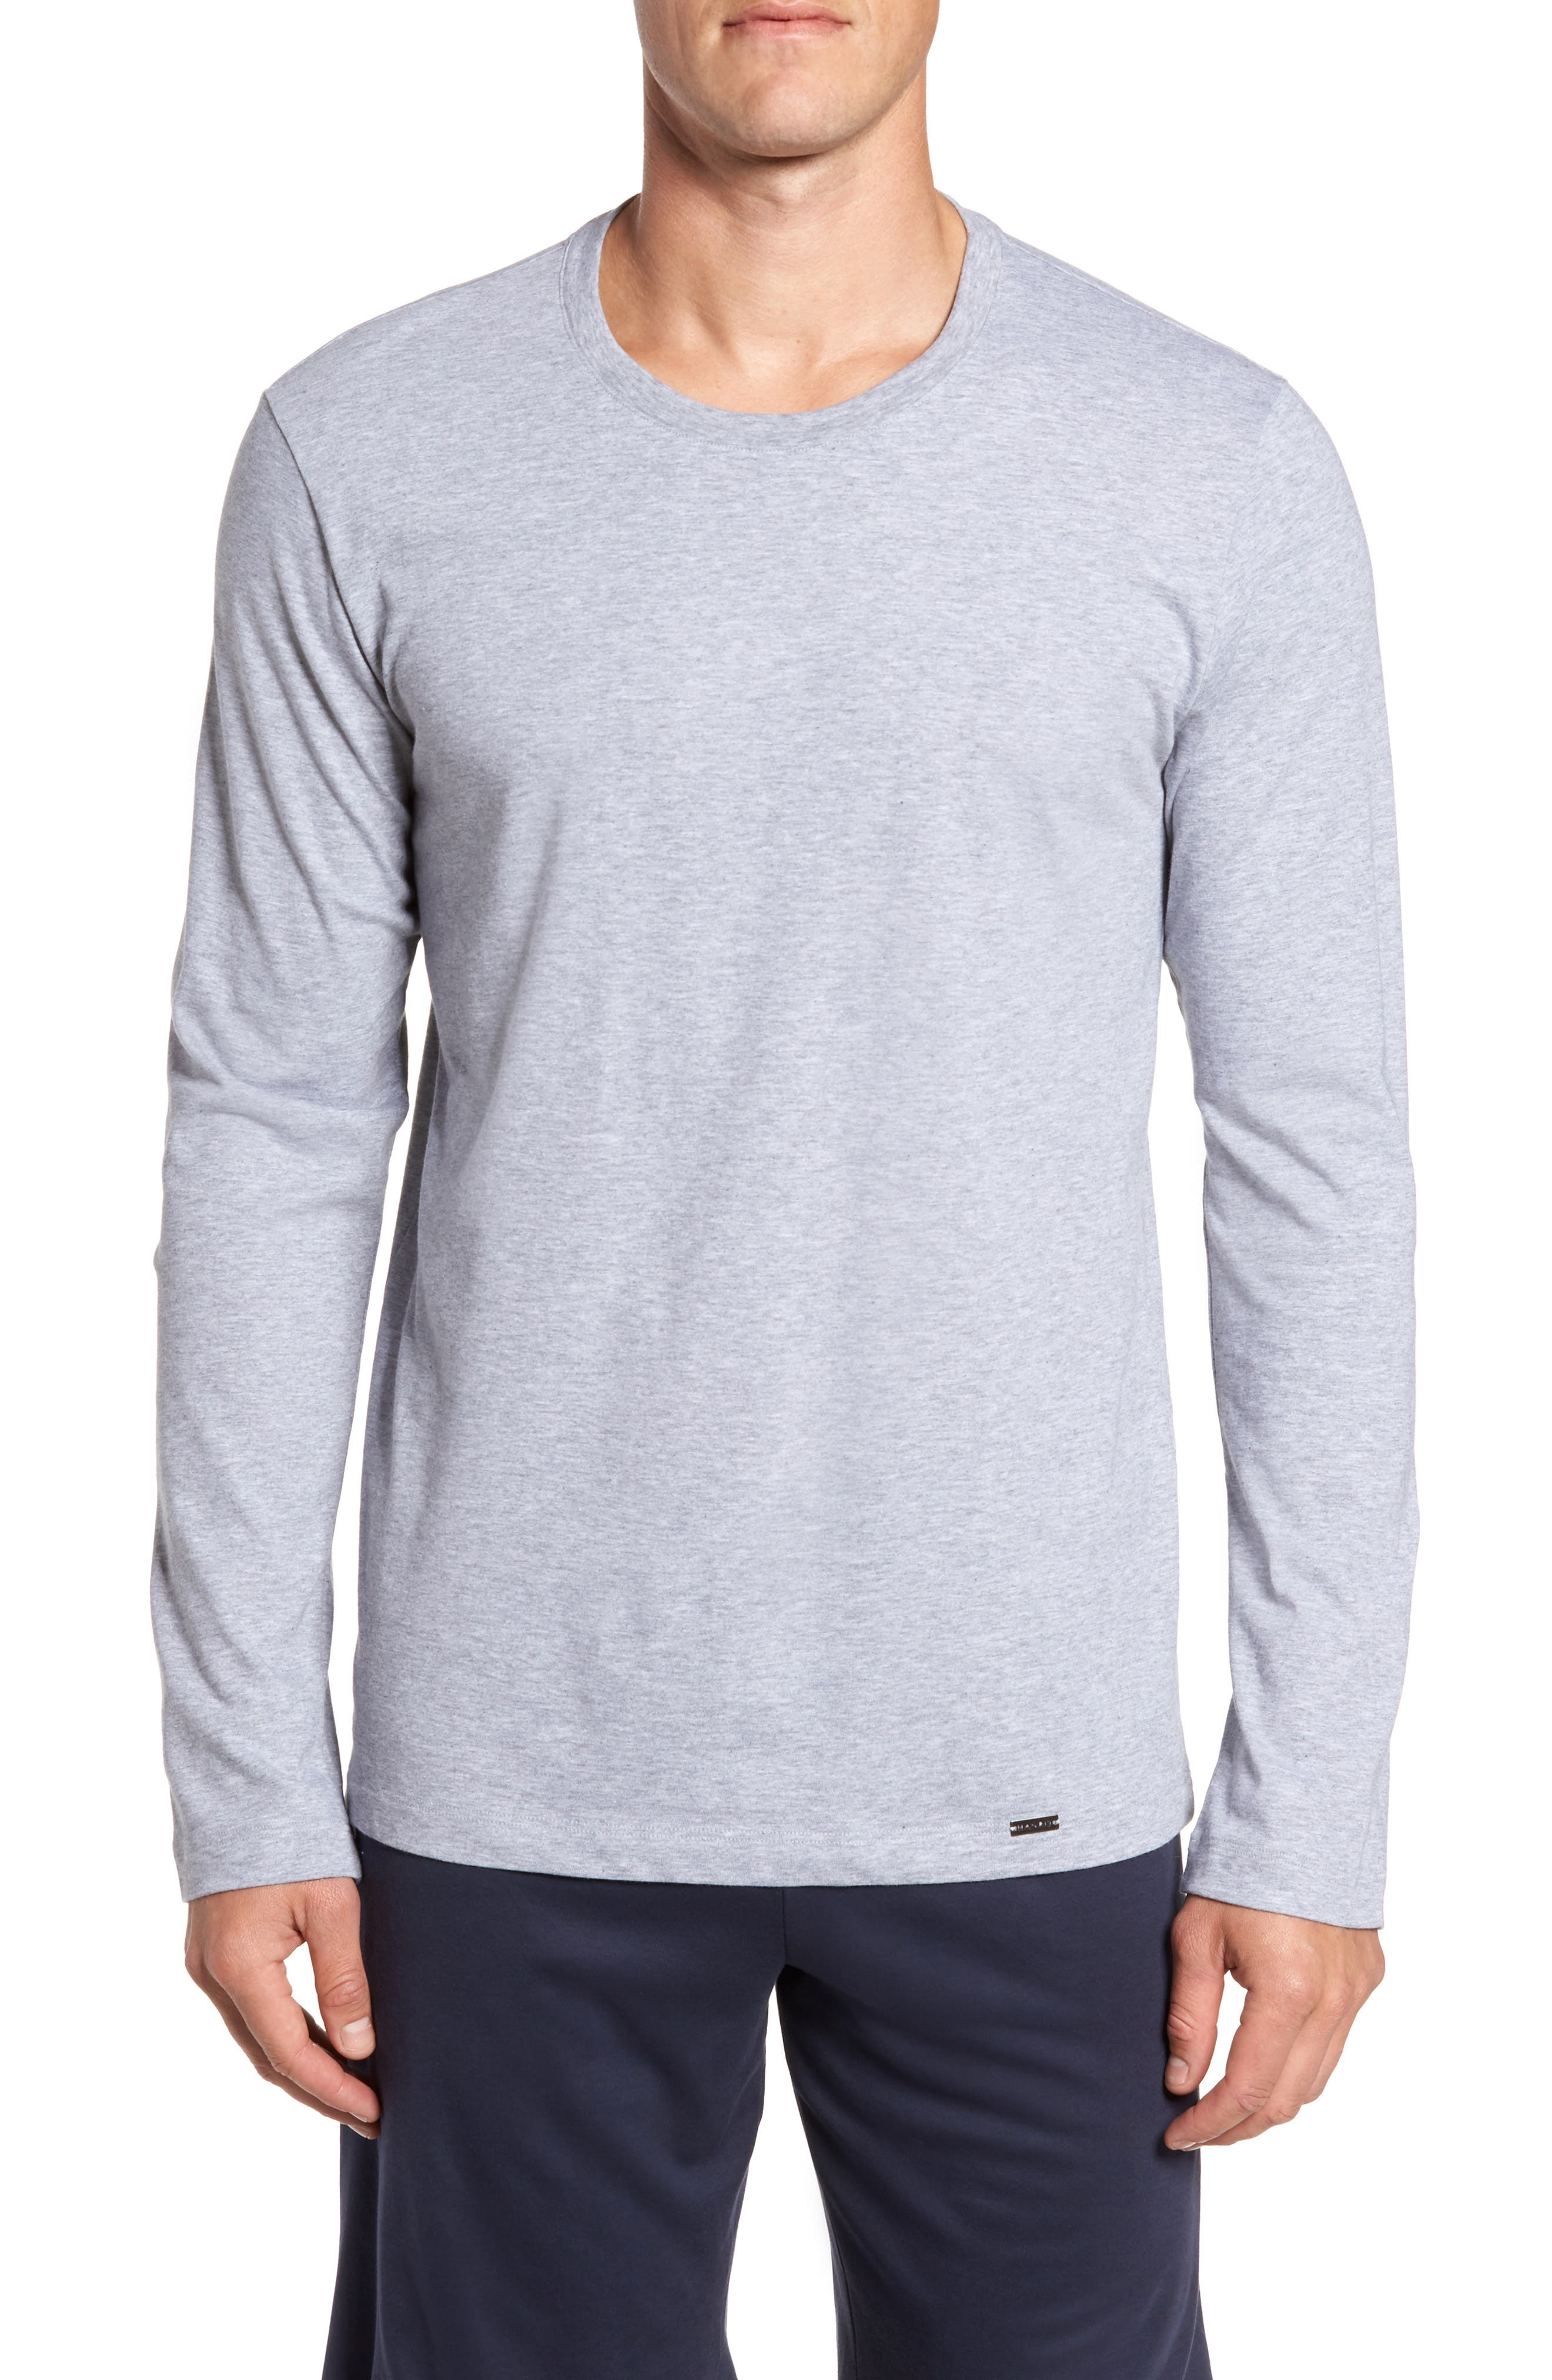 Living Long Sleeve T-Shirt,                         Main,                         color, Grey Melange